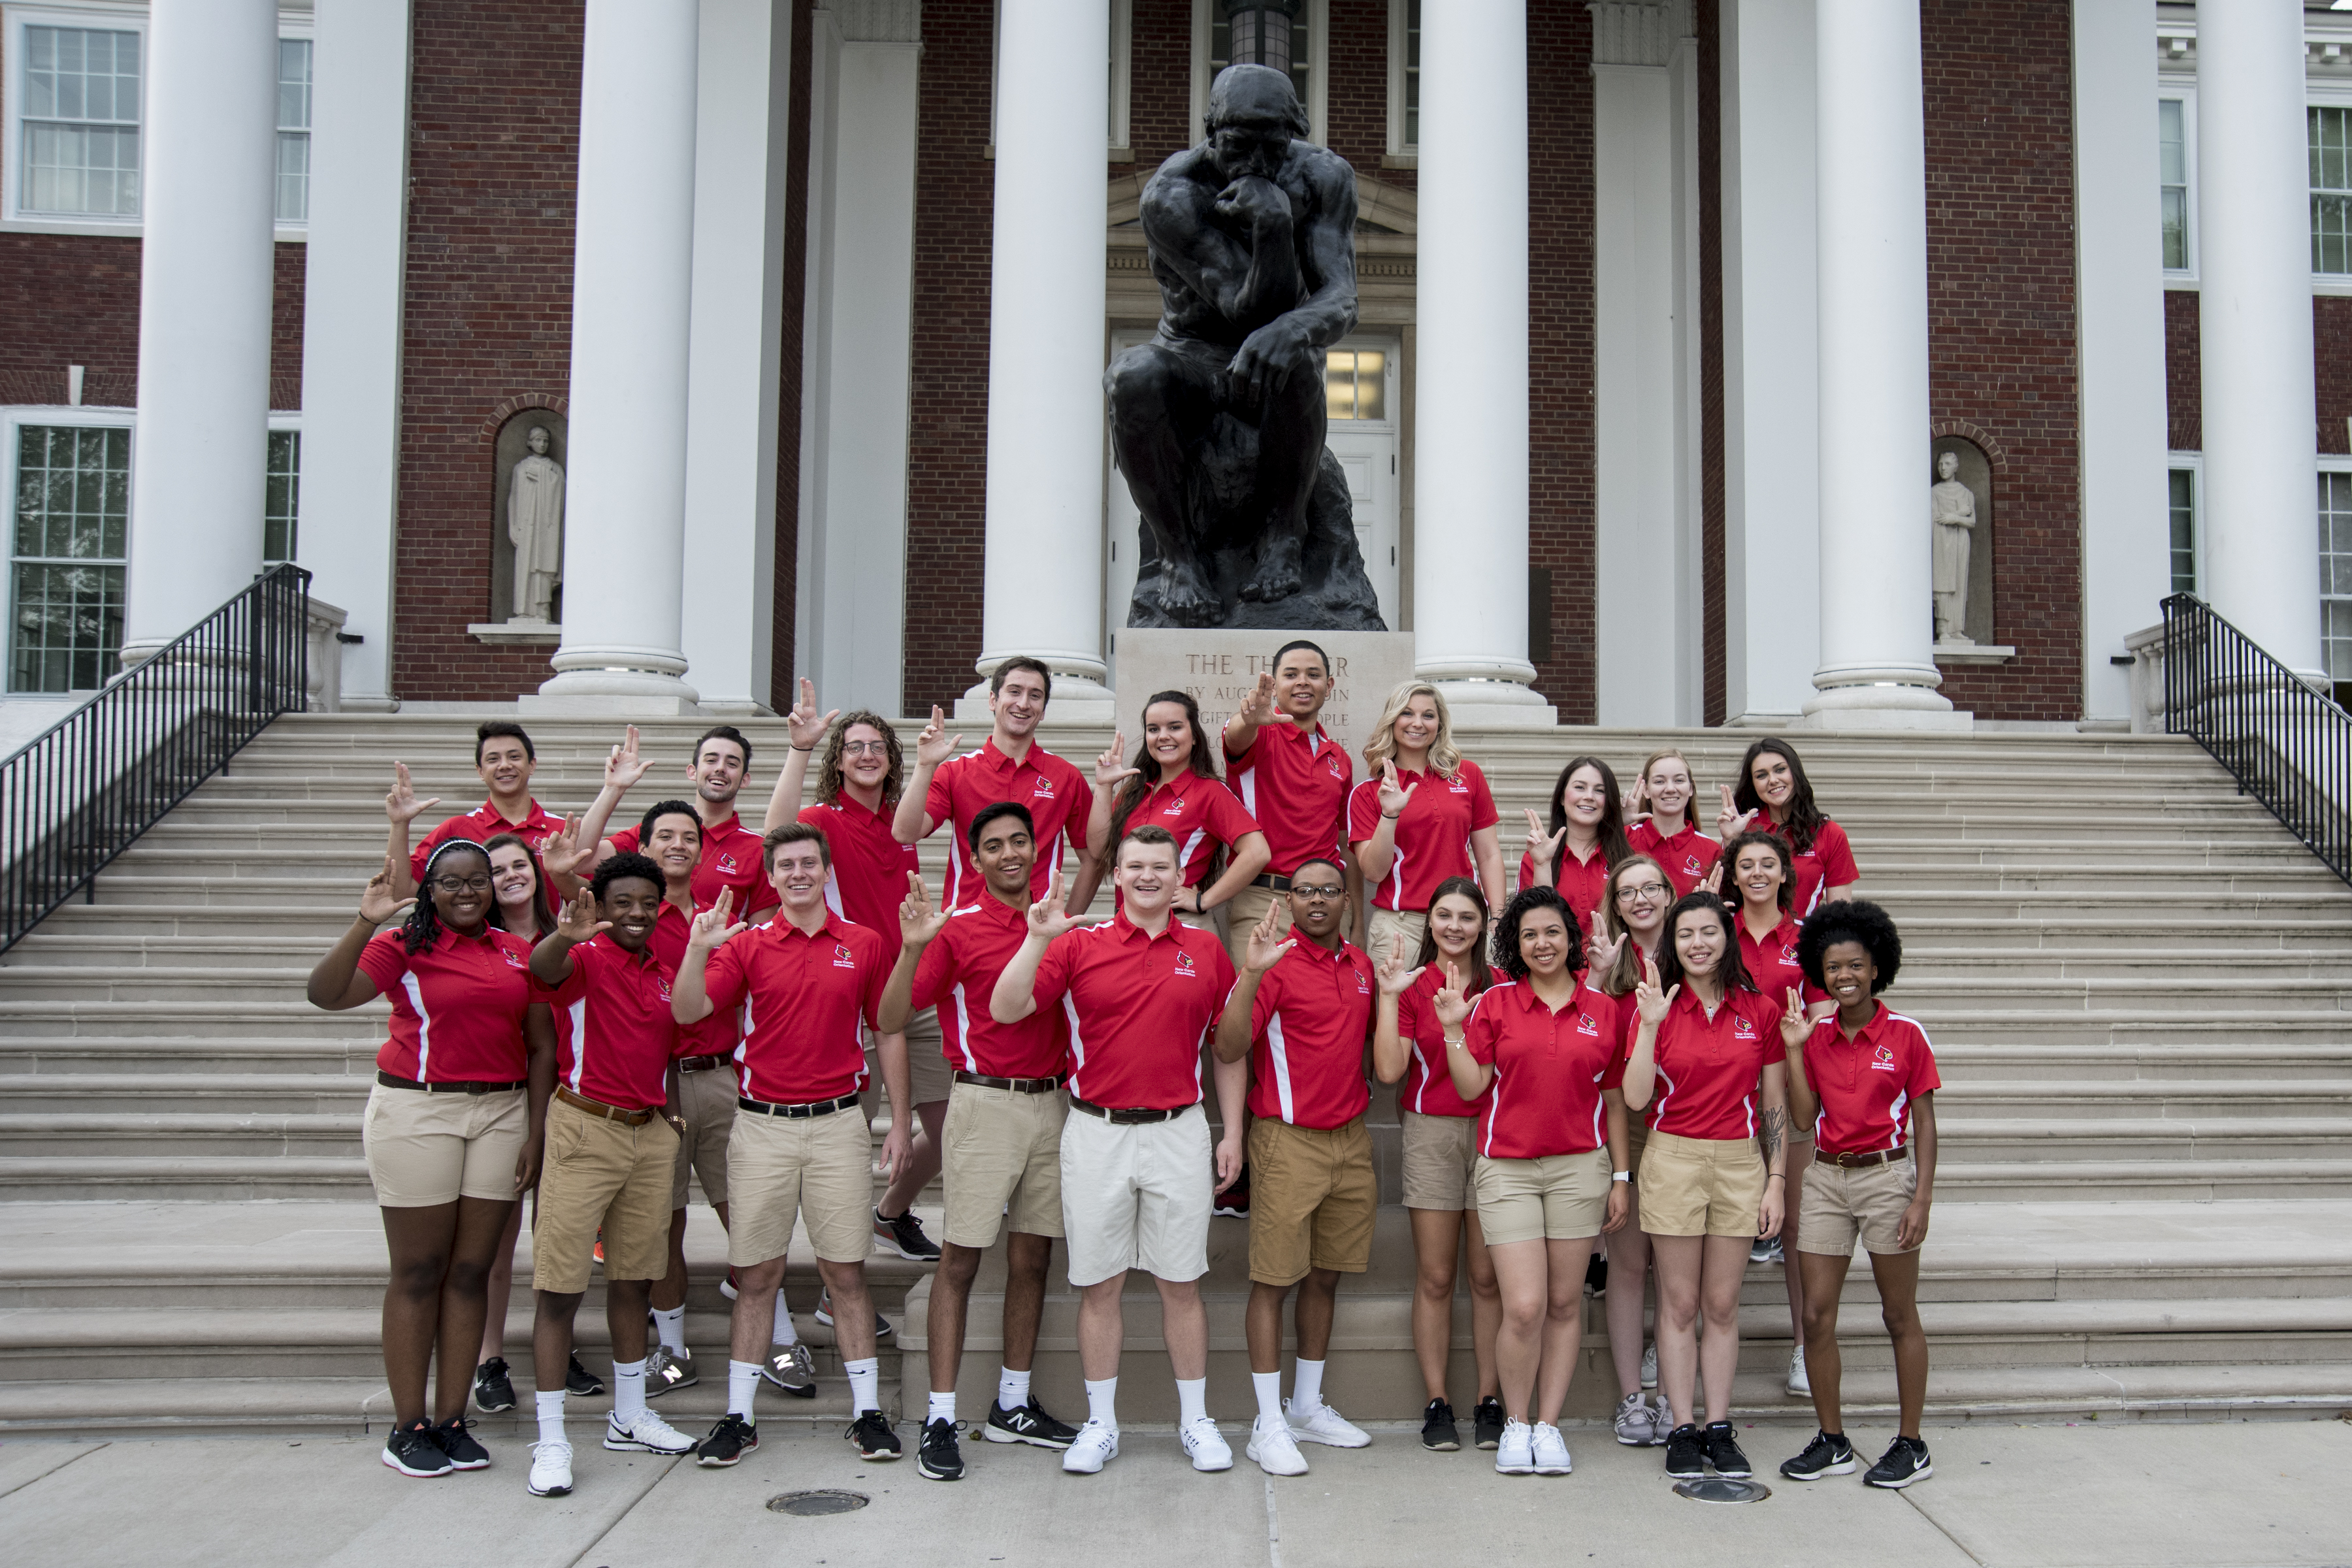 A photo of all the SOSers in front of the Thinker sculpture on UofL's campus.